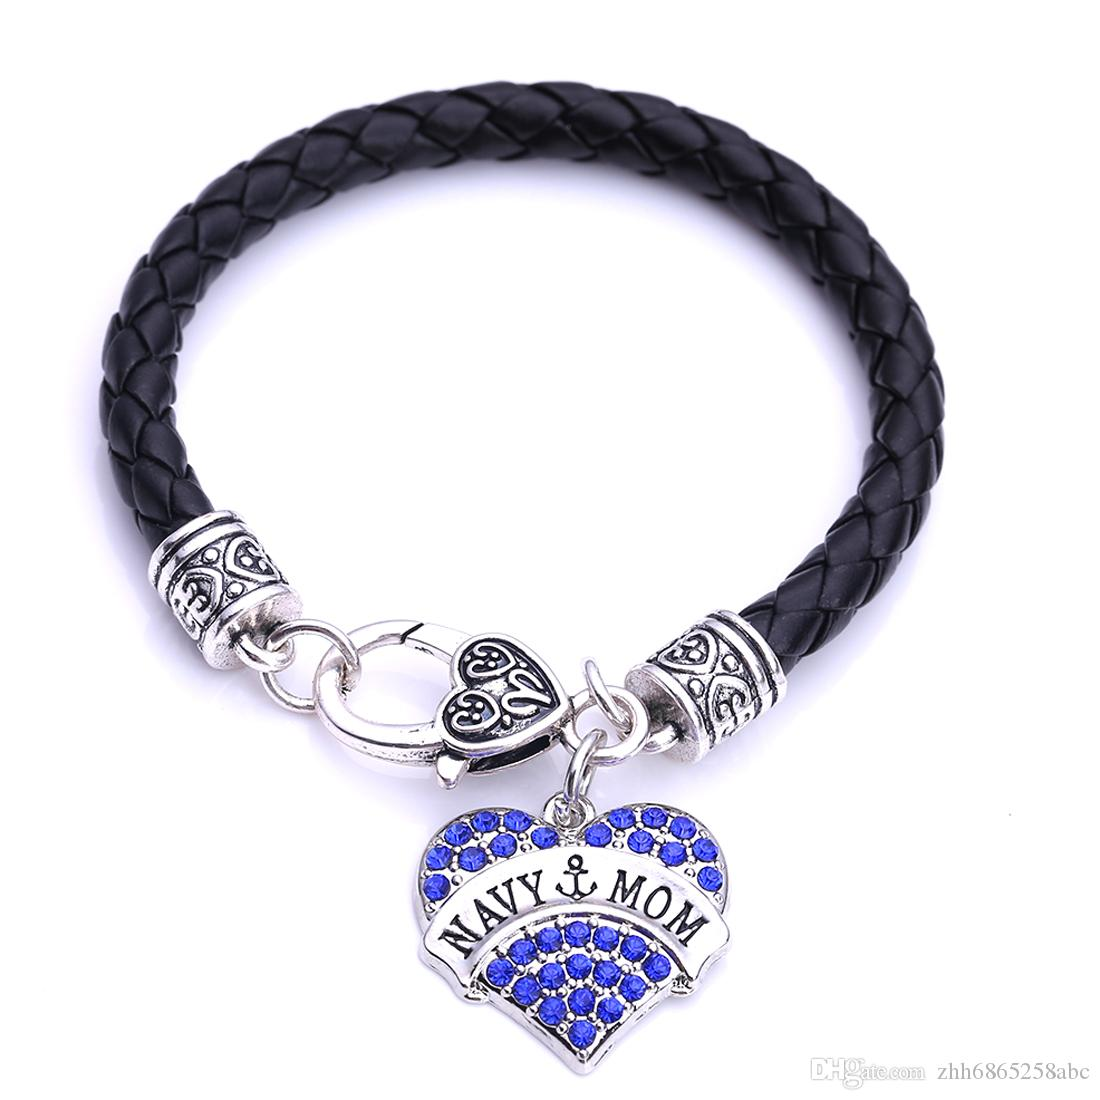 london hires ca of sterling en friendship minifriendship mini bracelets bracelet silver links amp and navy